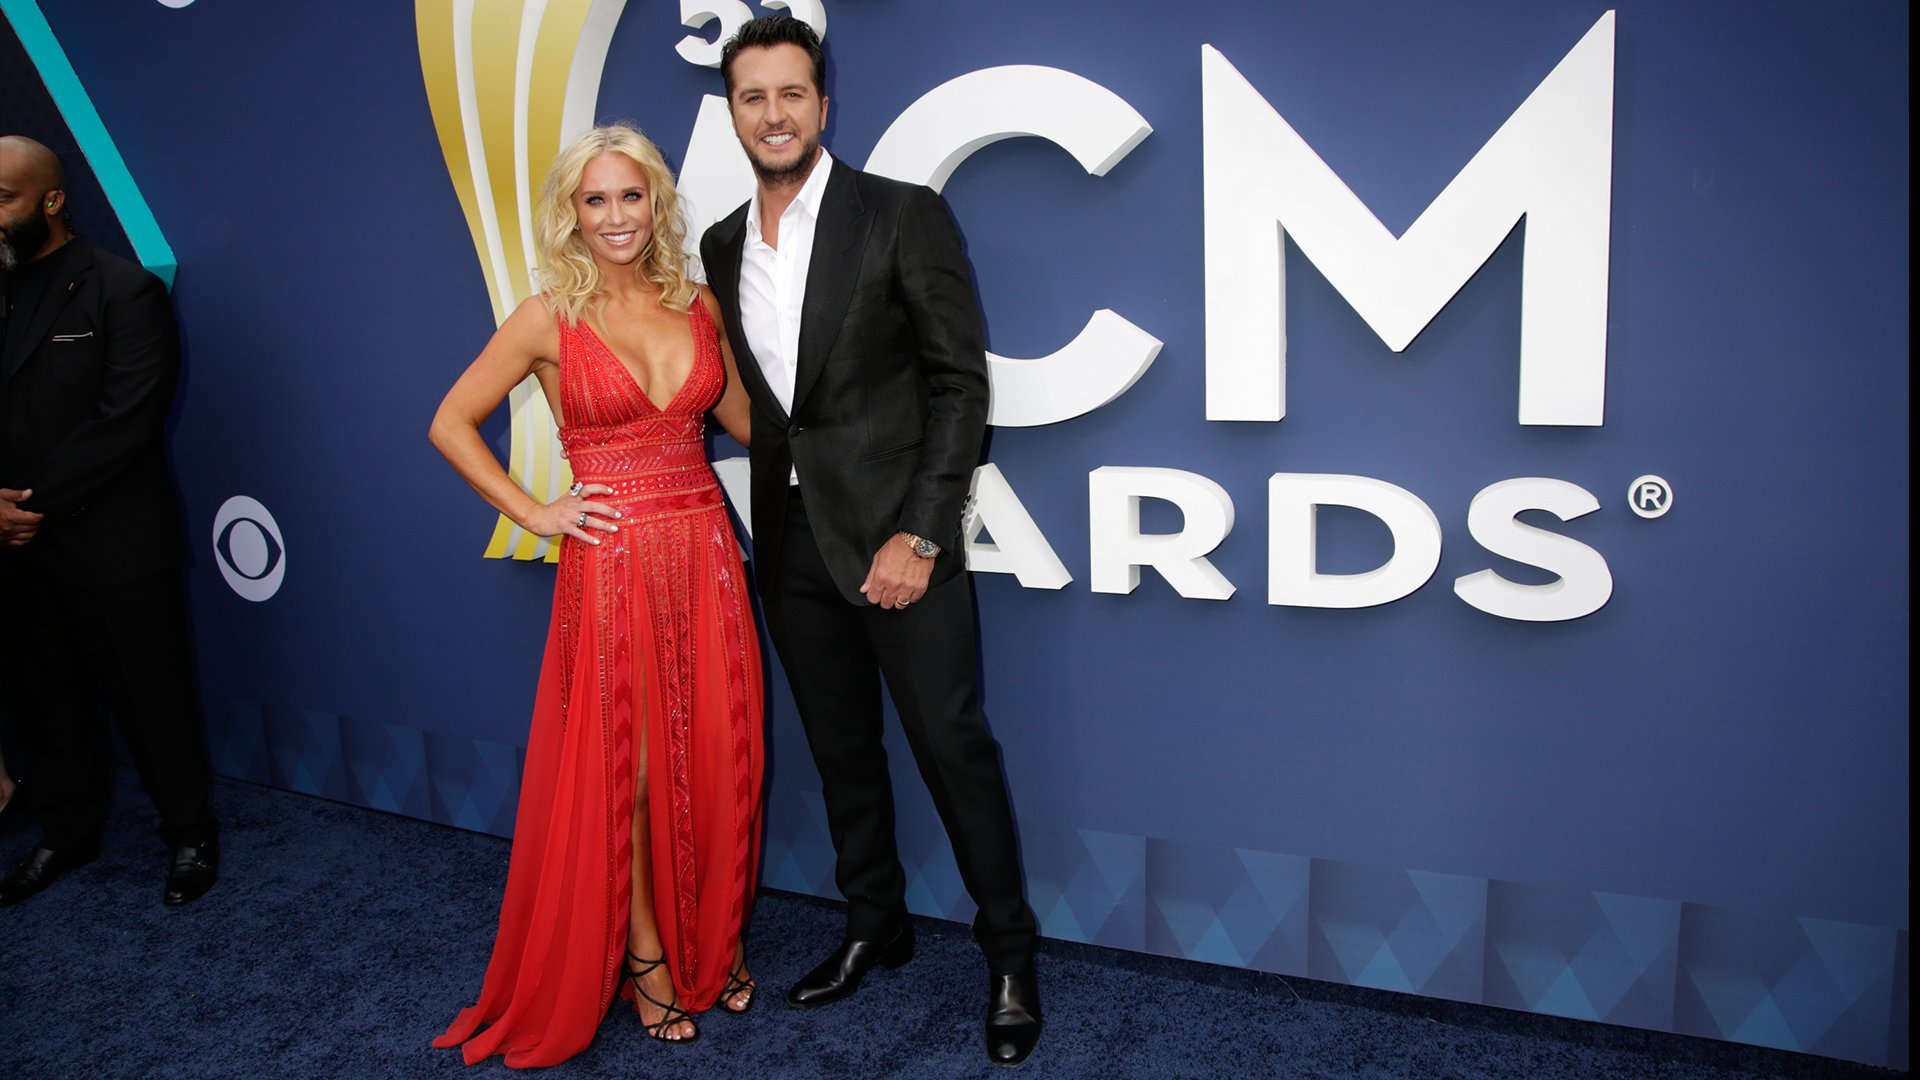 Luke Bryan hangs loose on the ACM red carpet by leaving his tie at home and opting for a more casual look.